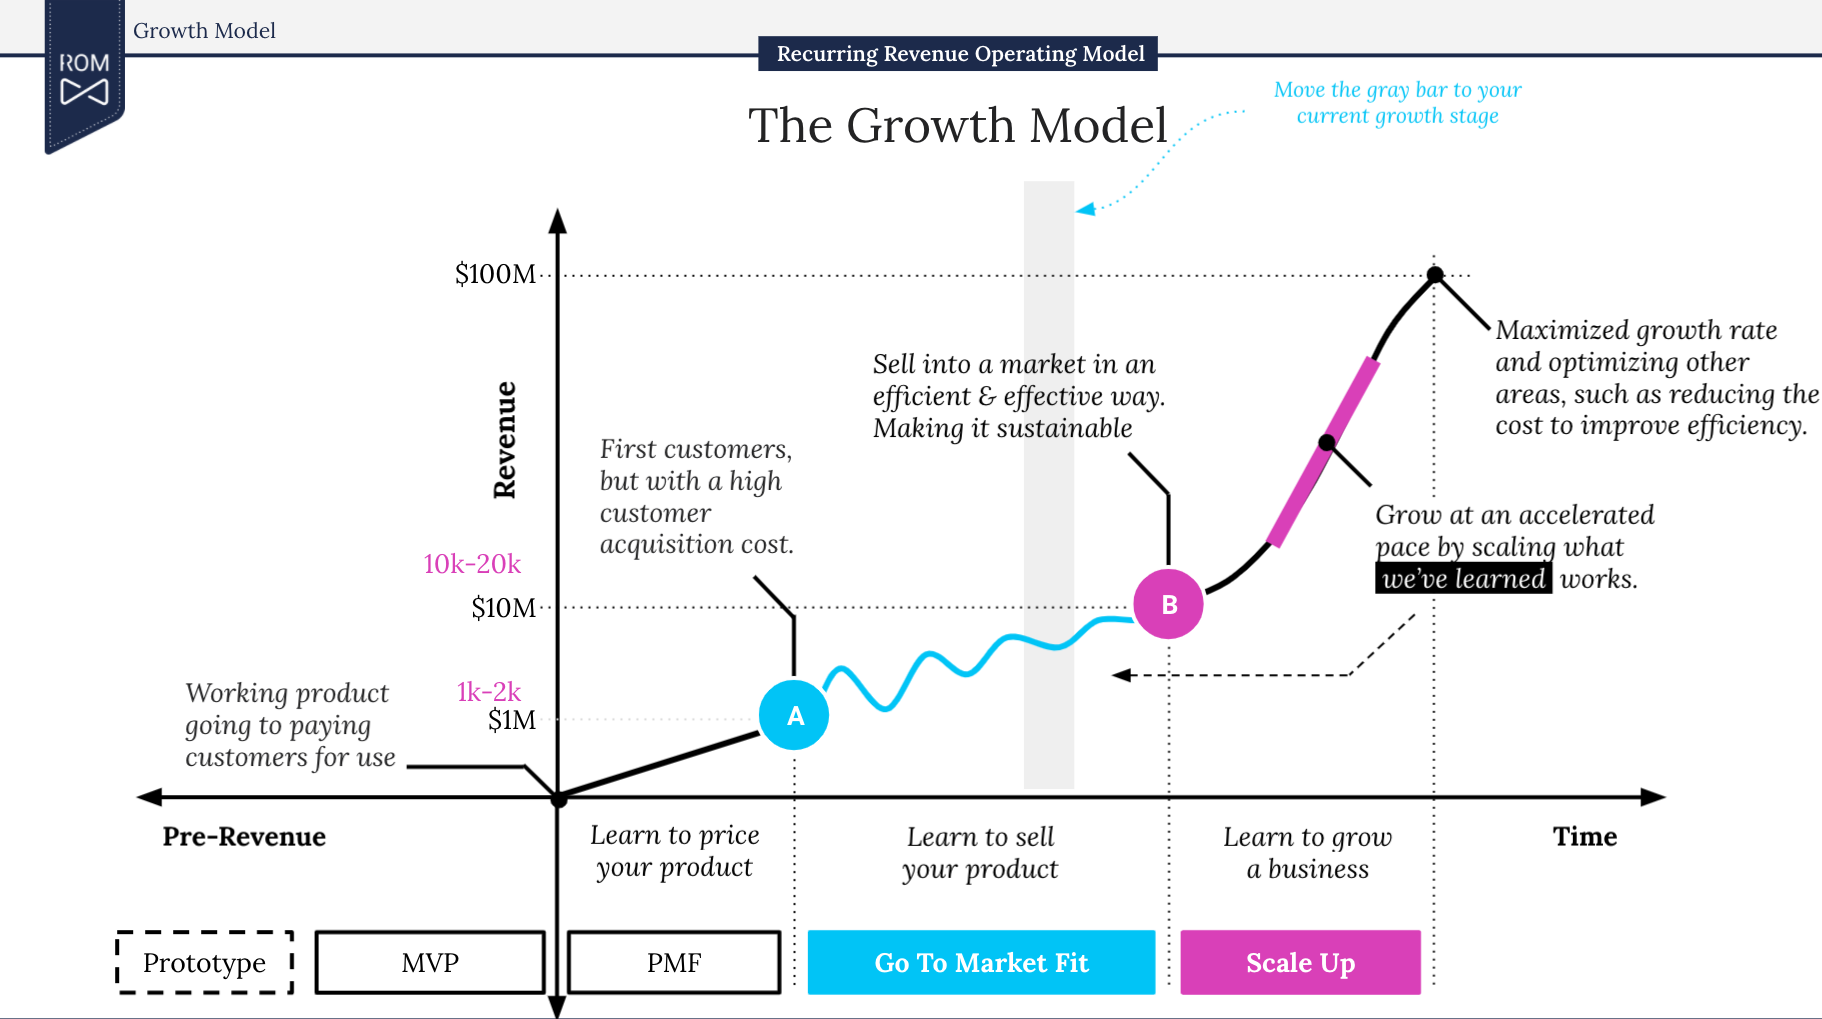 Template of the ROM Growth Model